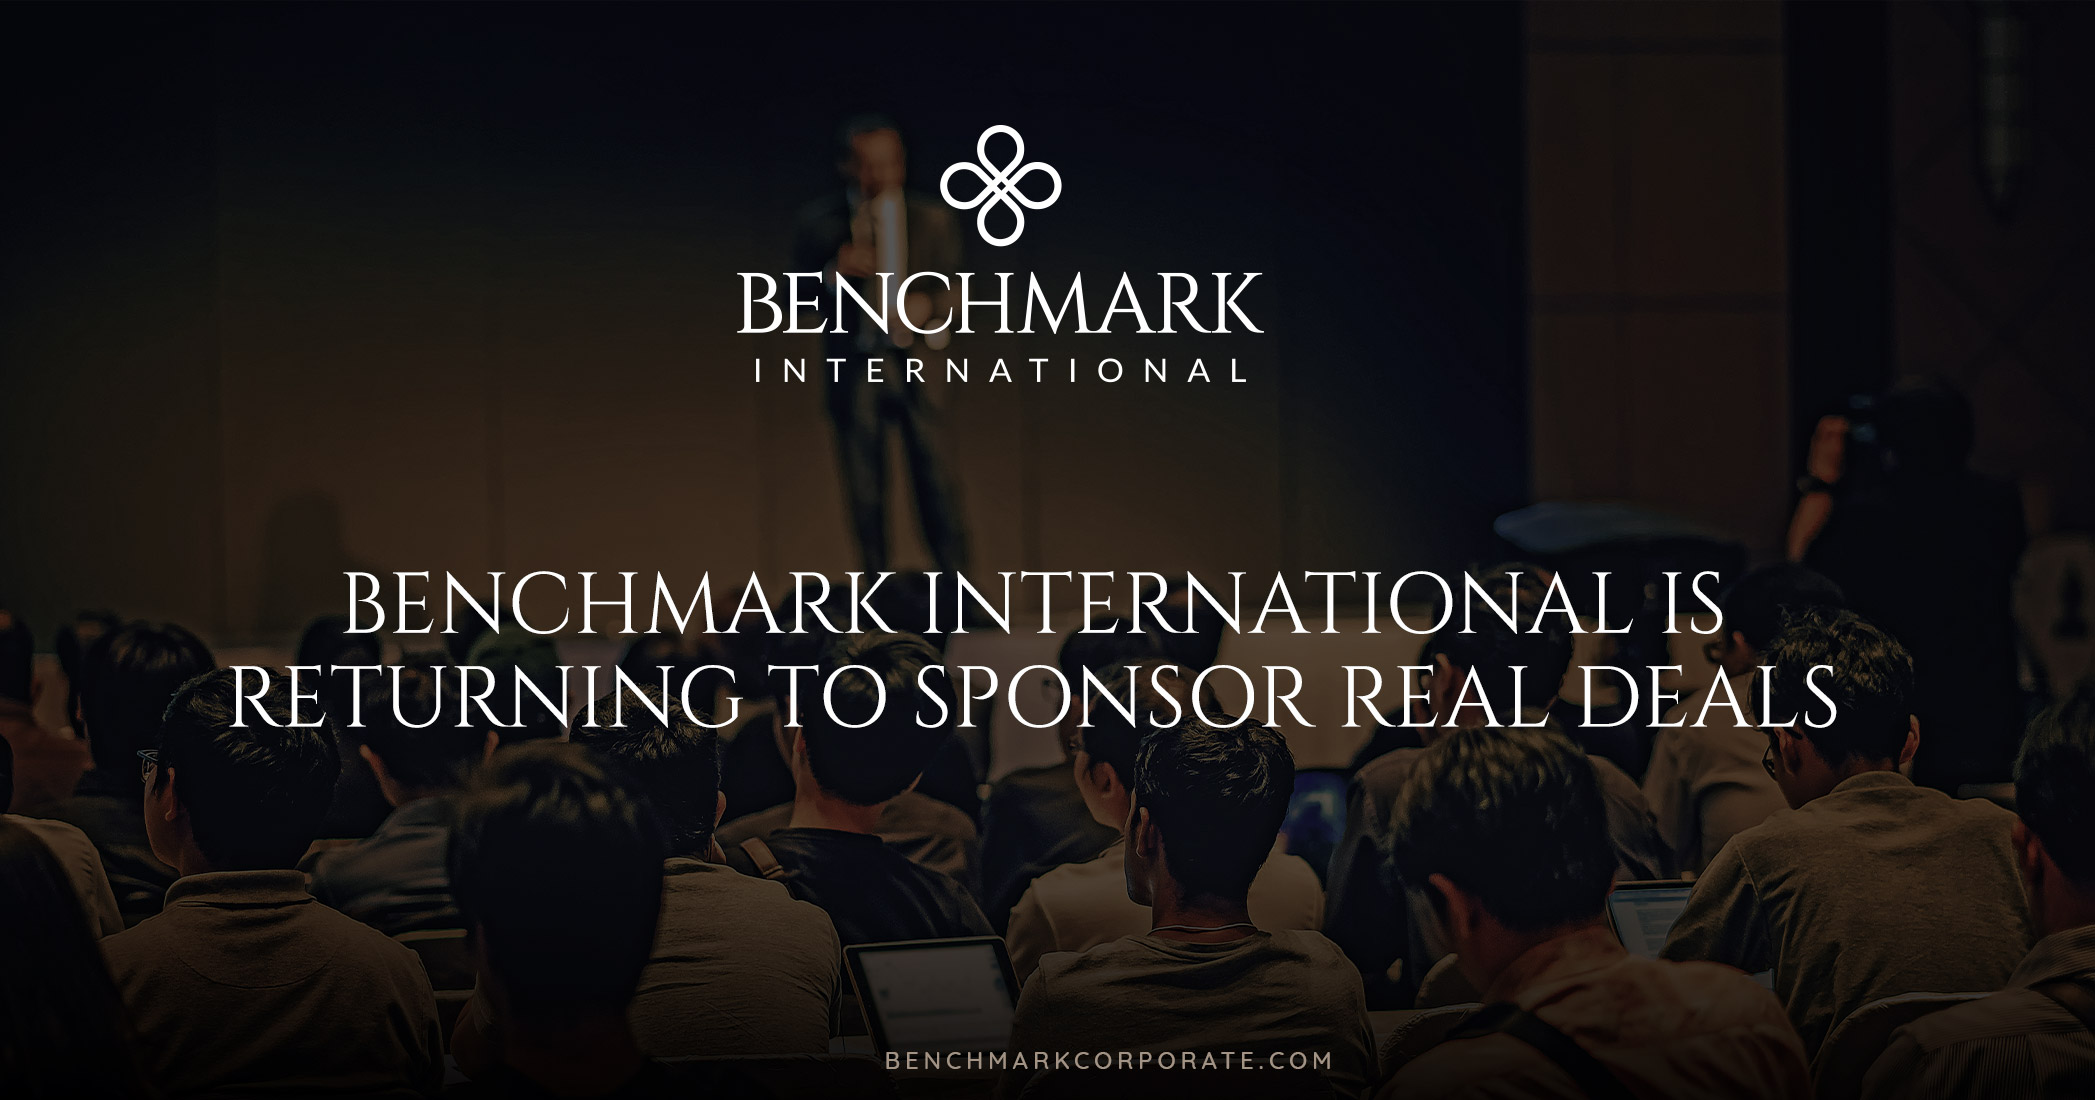 Benchmark International is Returning to Sponsor Real Deals